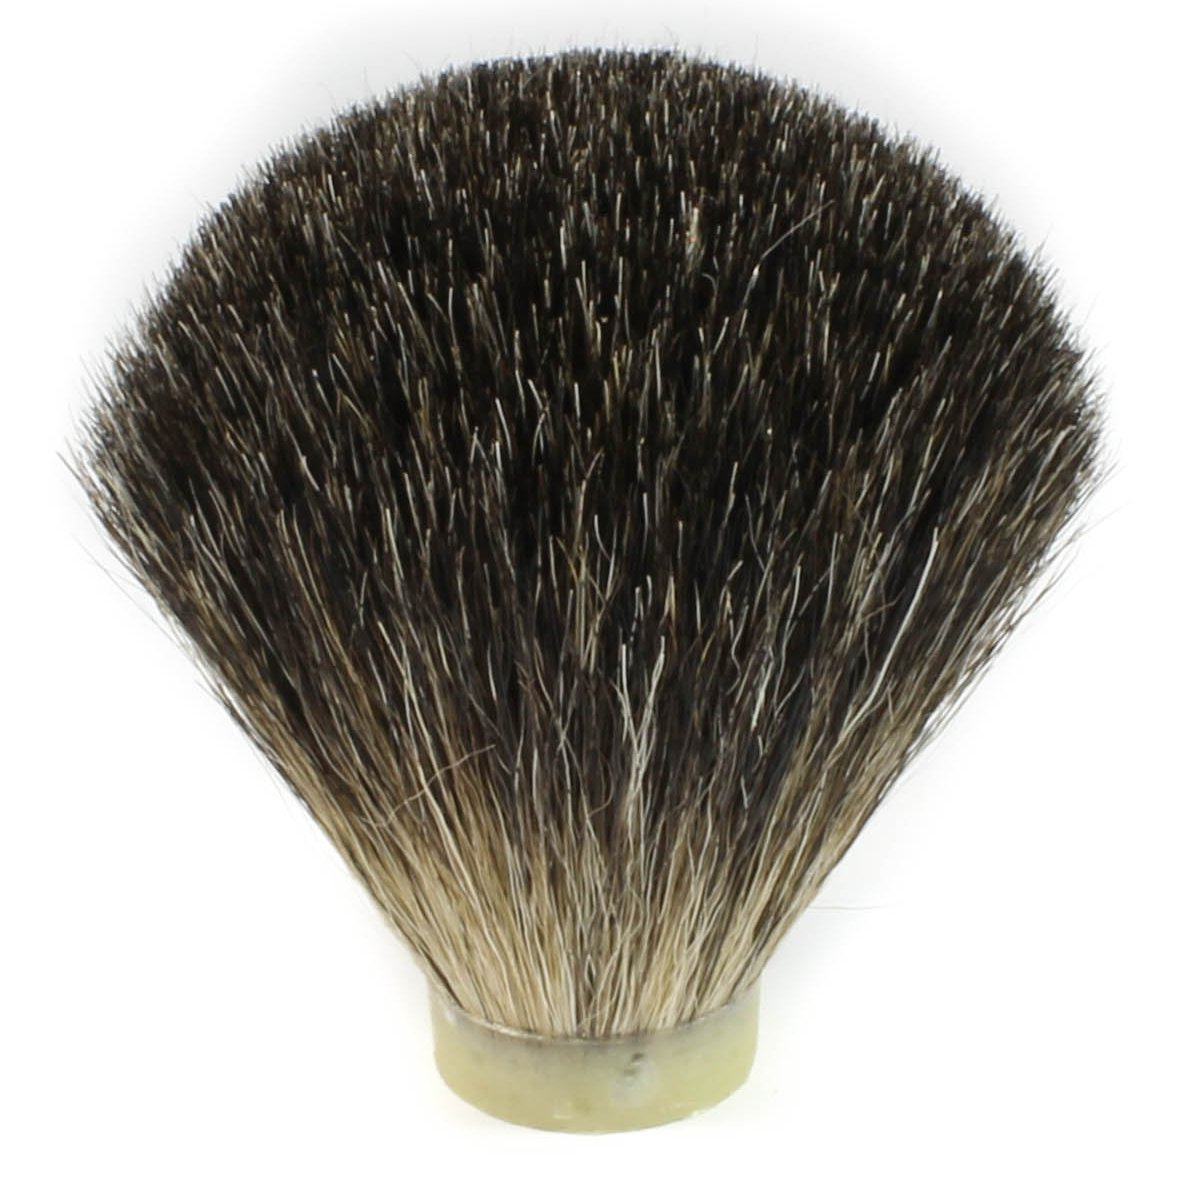 Pure Badger Hair Shaving Ranking integrated 1st New Orleans Mall place Brush Knot 63mm 20mm x